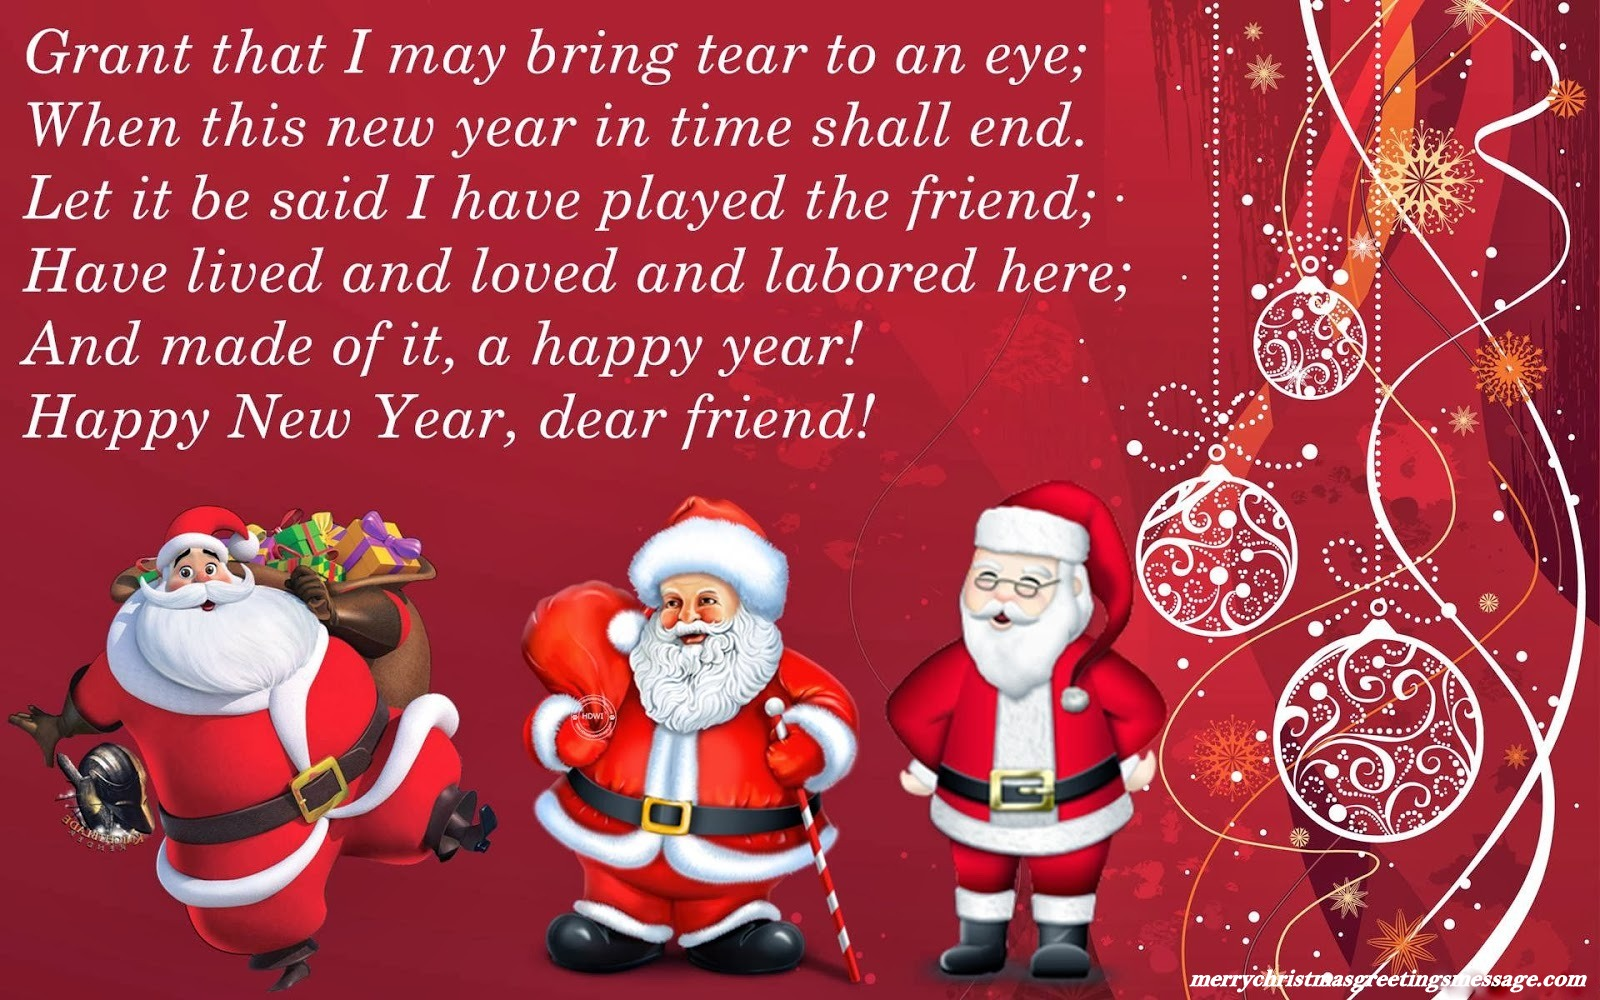 Inspirational Christmas Messages.Merry Christmas Wishes Messages Quotes For Friends Family